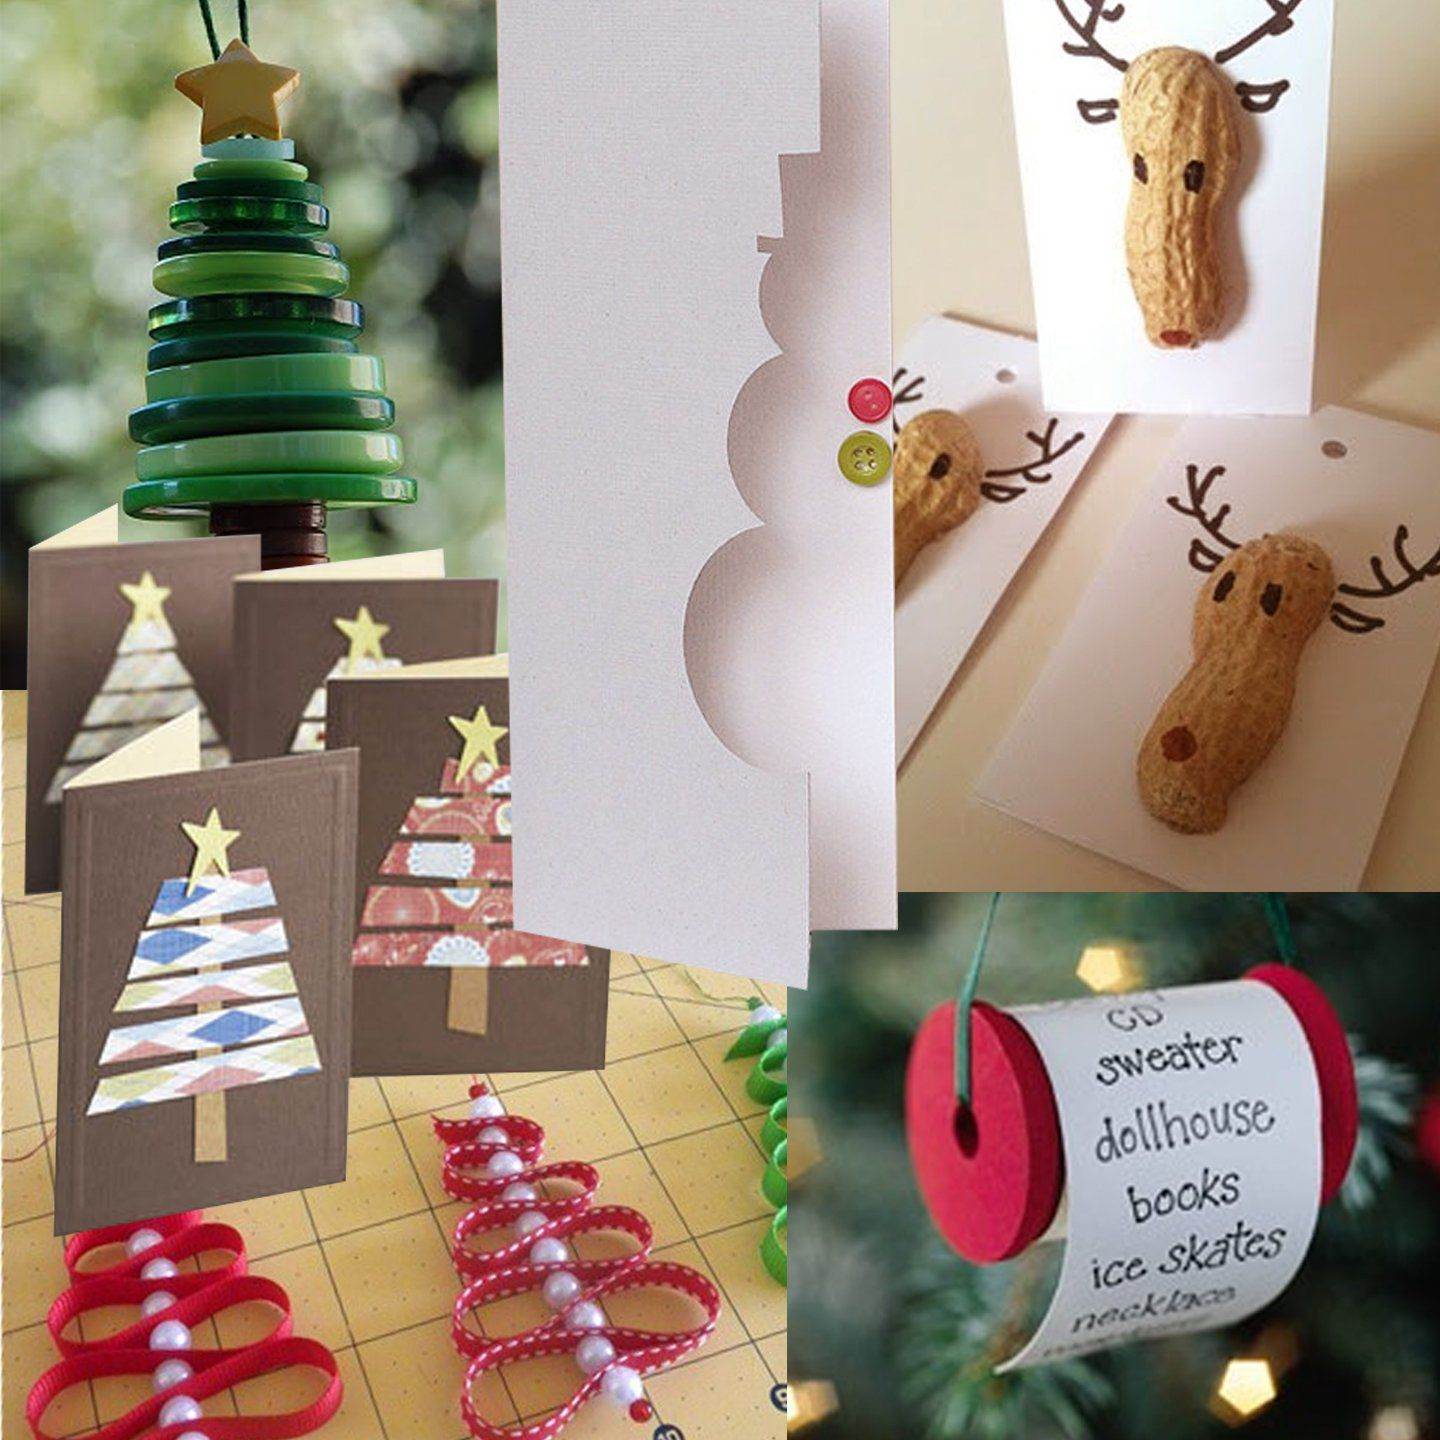 Diy Home Decor Ideas That Anyone Can Do: Christmas Room Ideas Diy Decorations